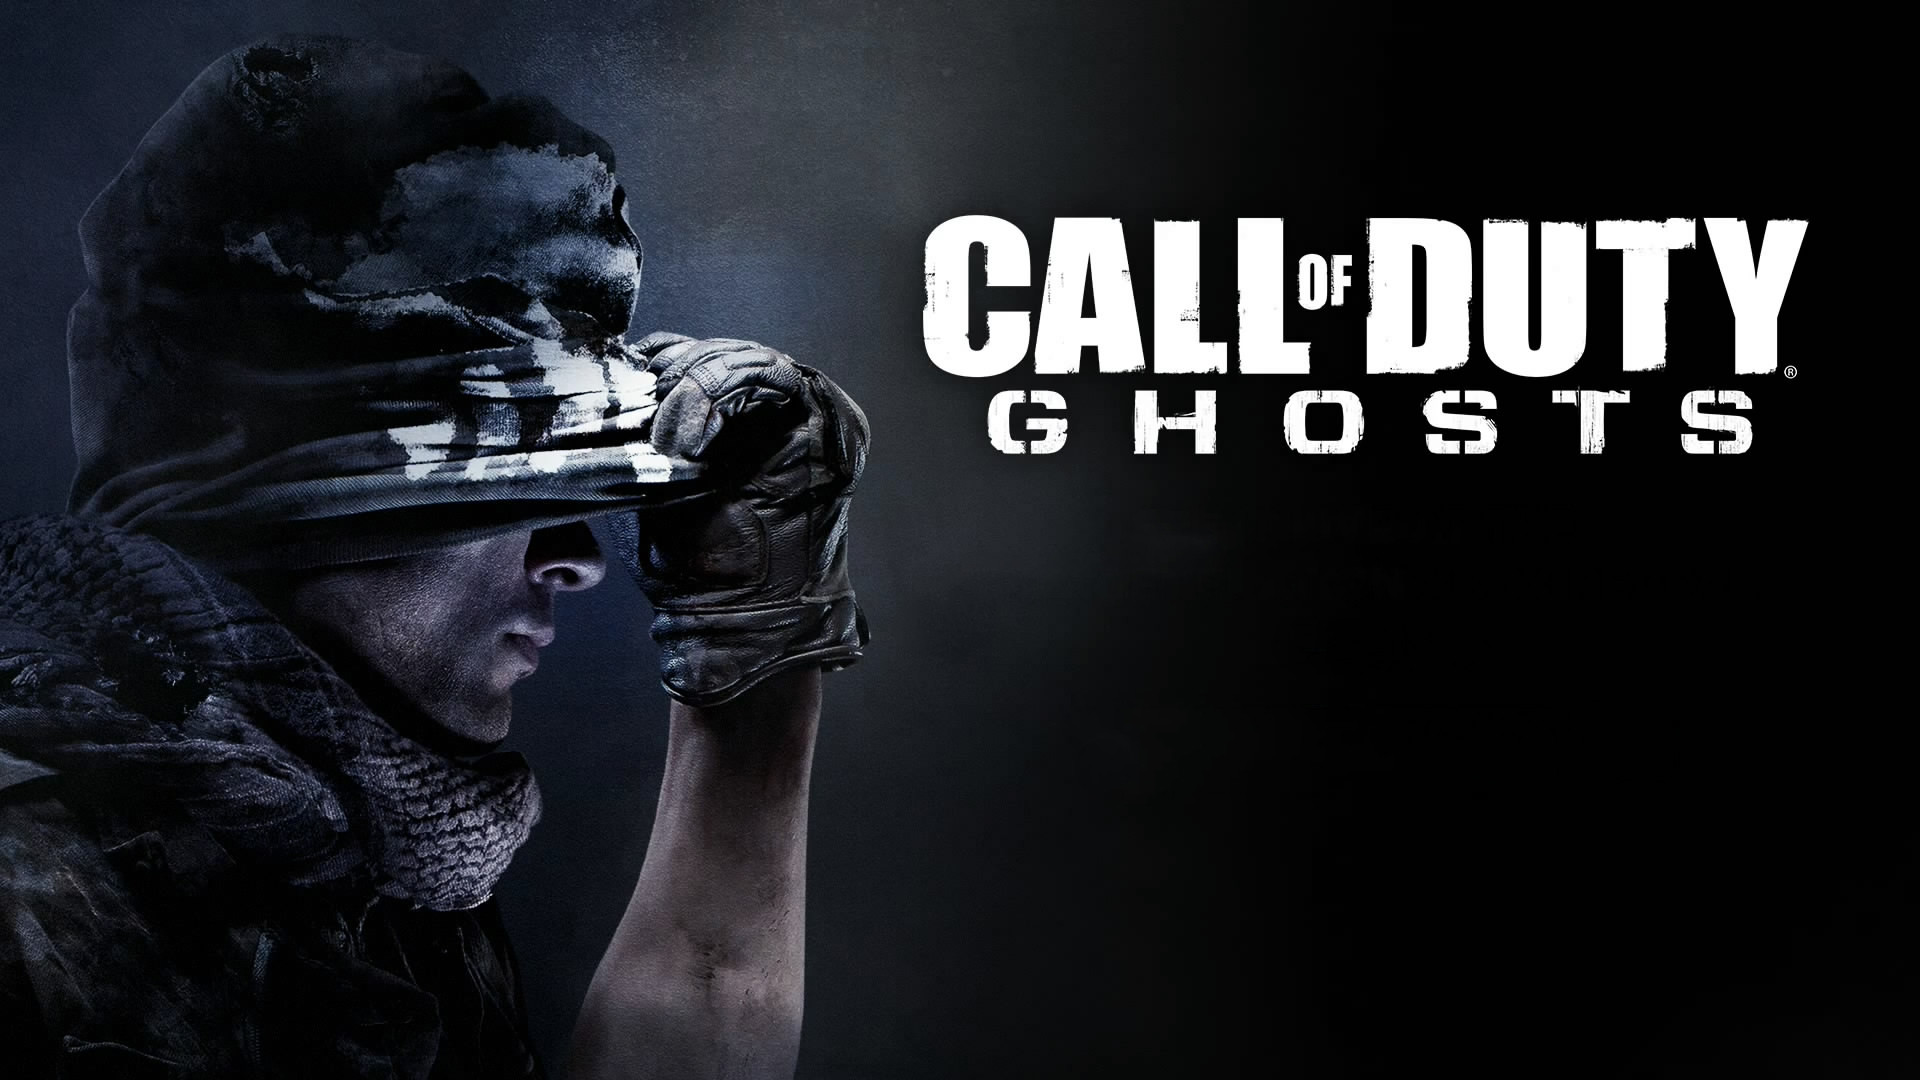 Full UK Gaming Charts – Call of Duty Ghosts on Top For Third Week in a Row